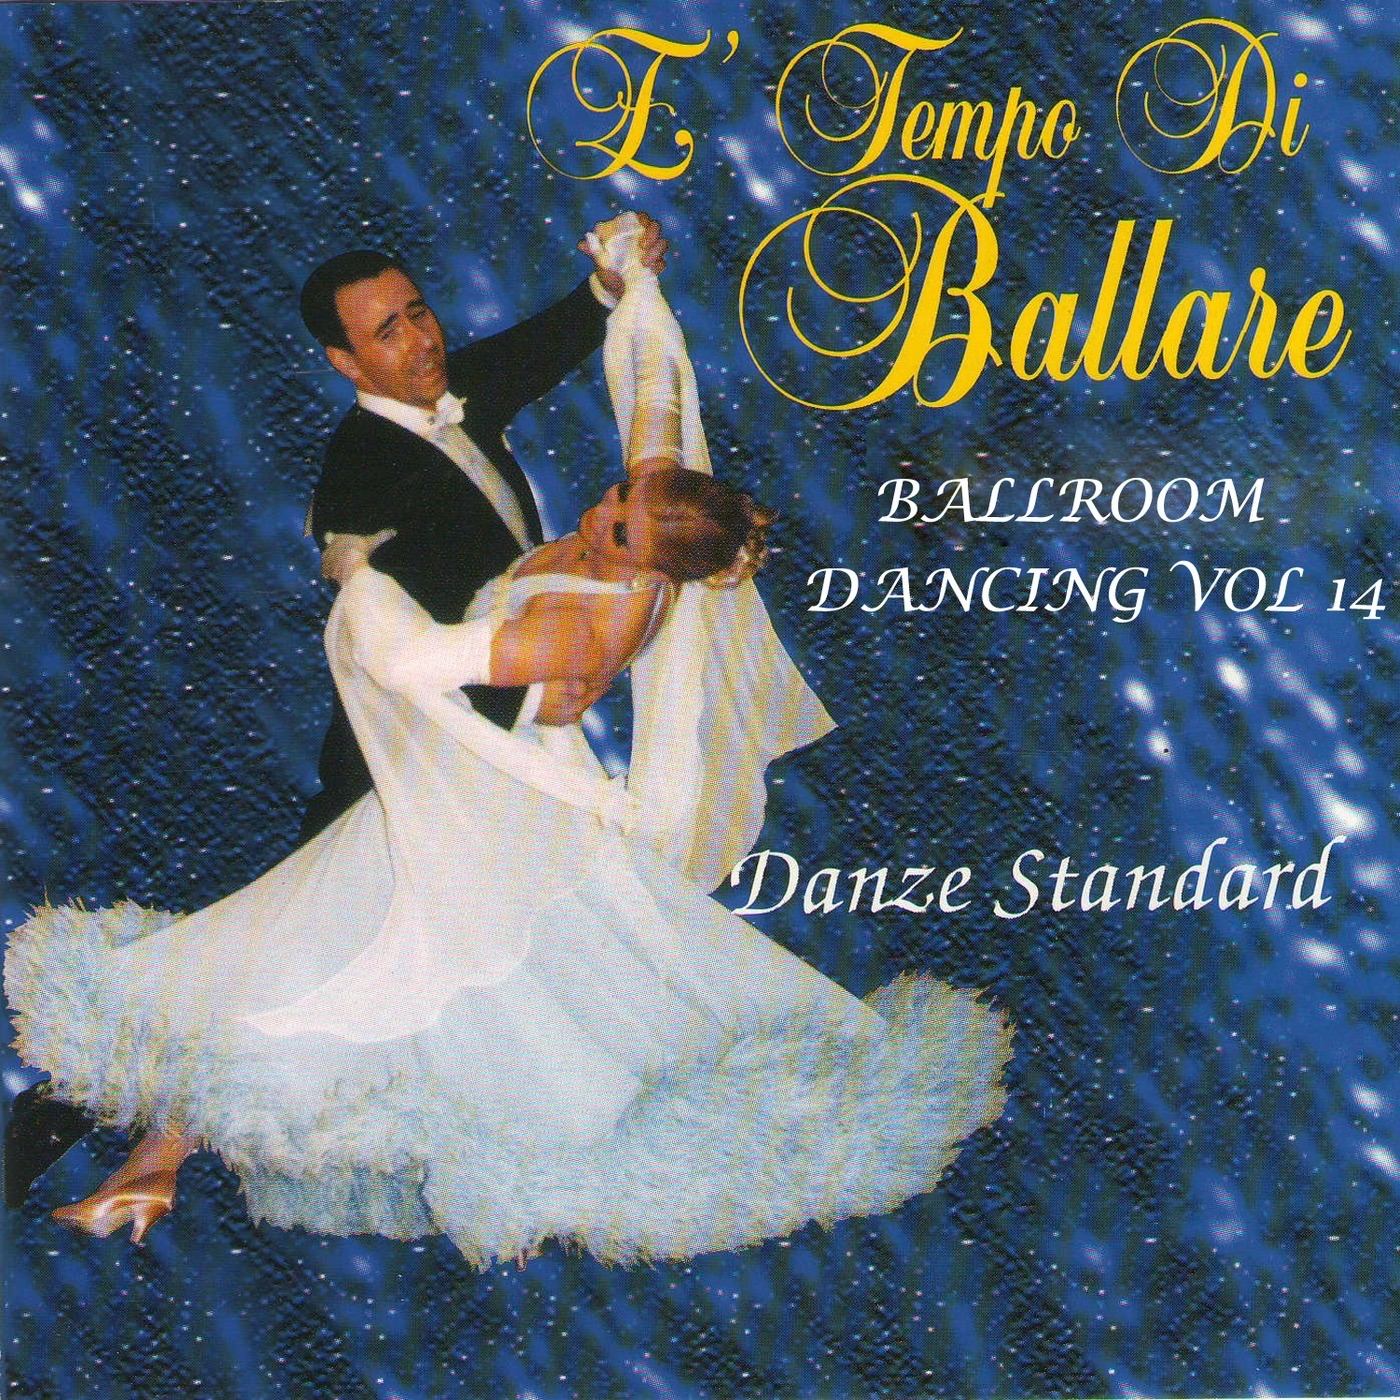 Dinle, ballroom dancing (waltz dance) the most beautiful ballroom dance, cantovano and his orchestra